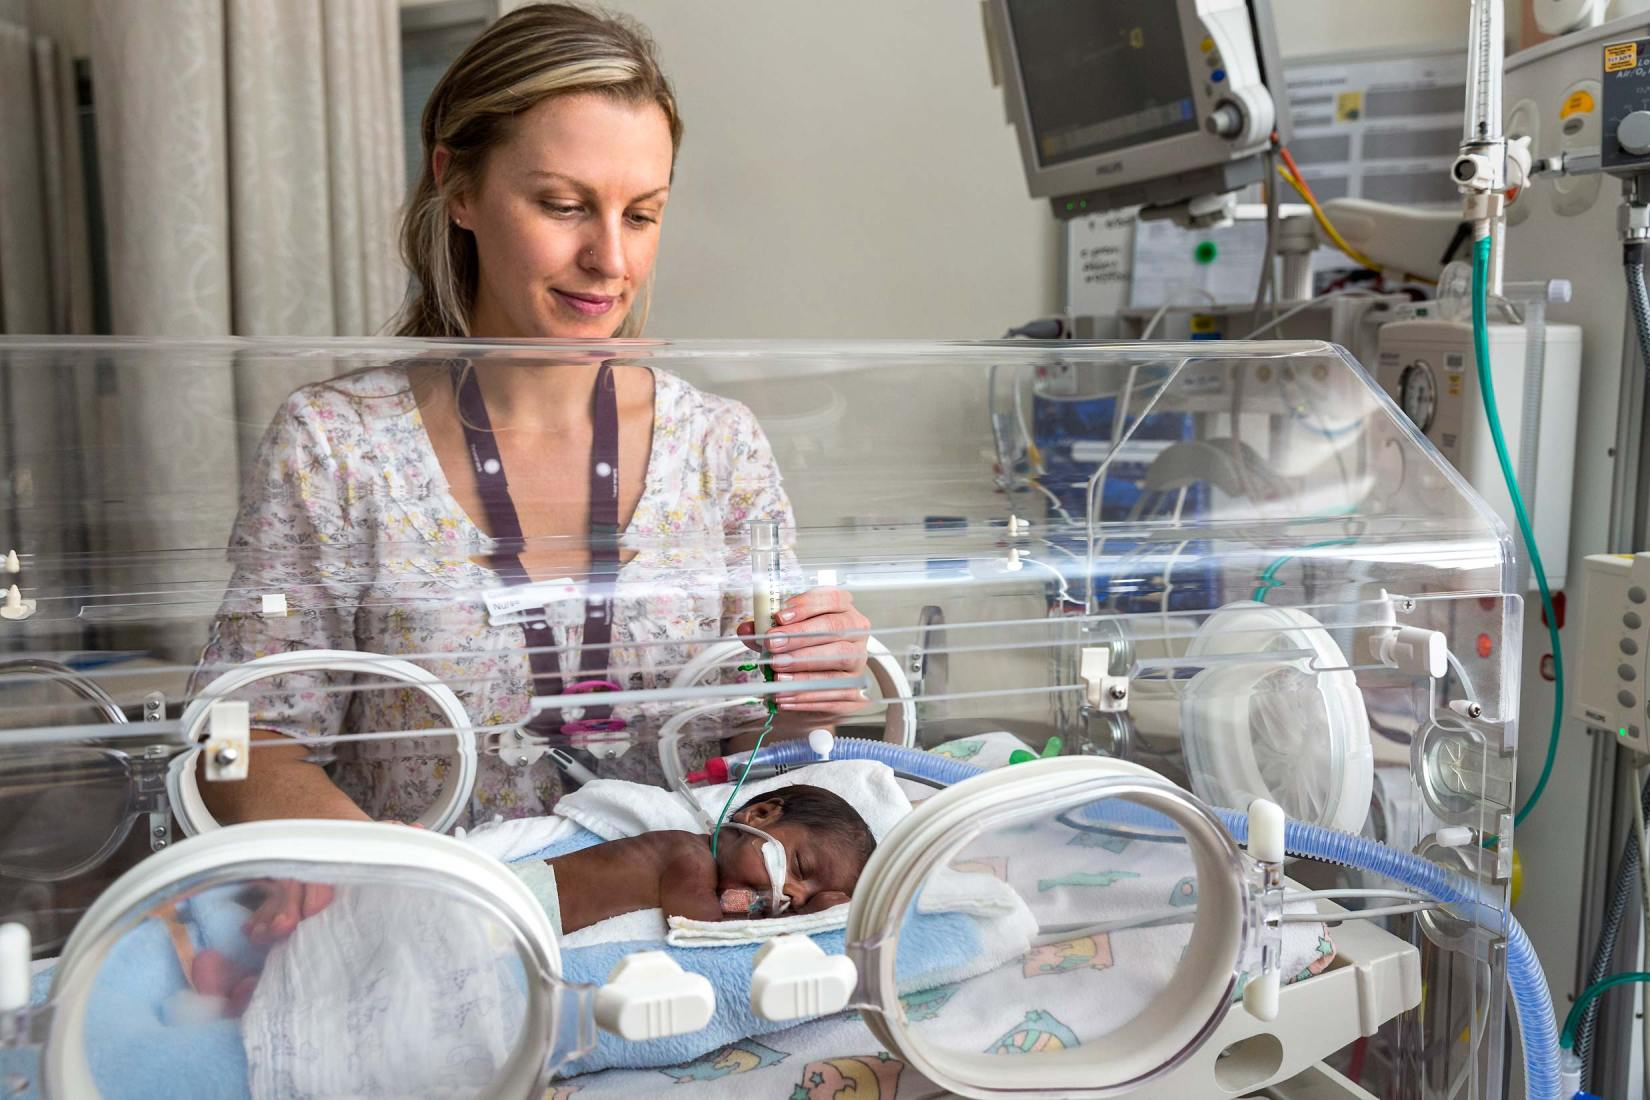 16130-0236-Image-Workshop-Melbourne-photographer-maternity-hospital-healthcare-premature-baby-incubator